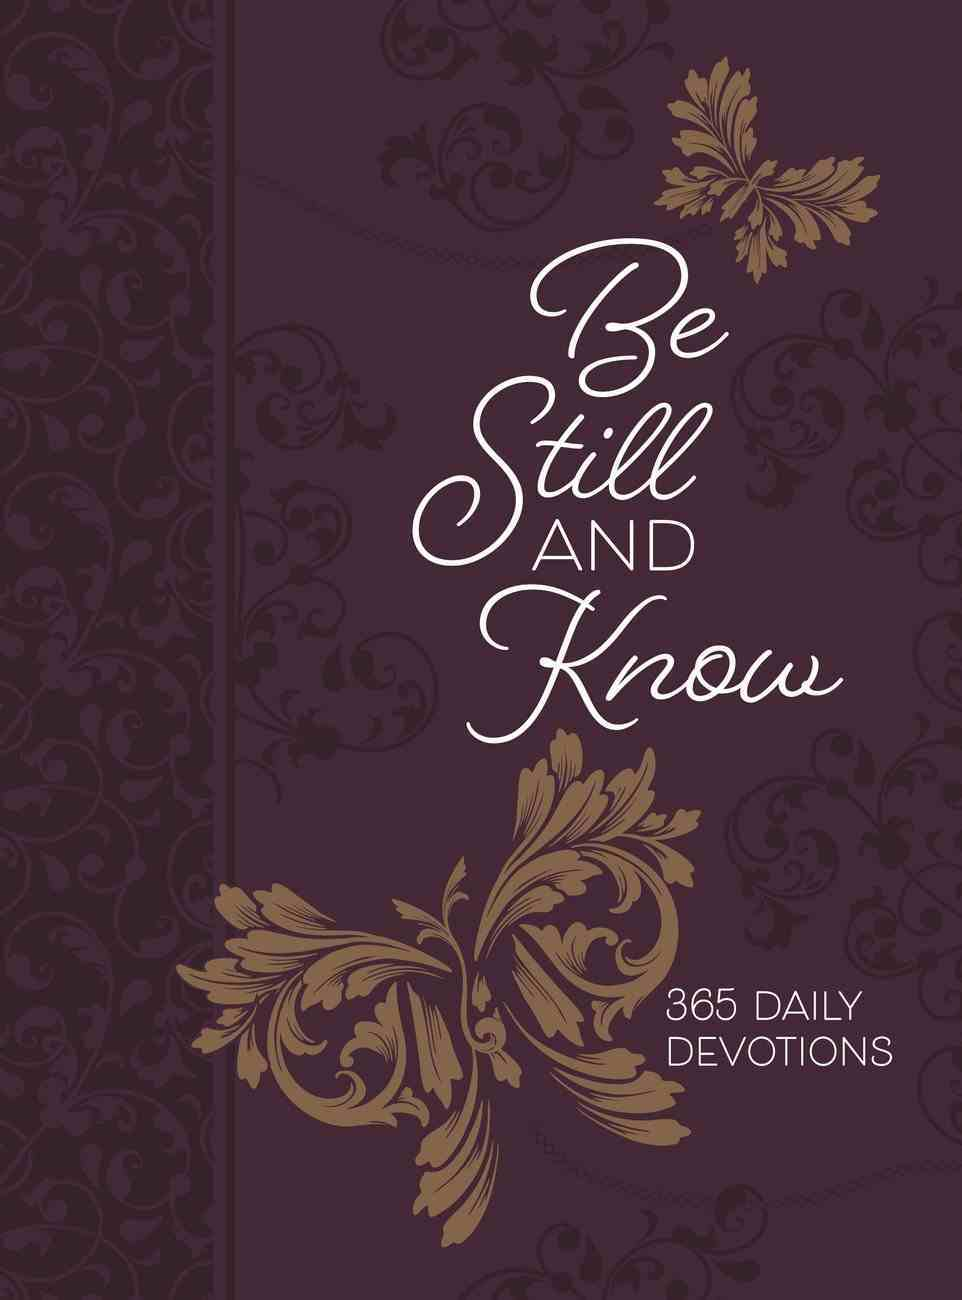 Be Still and Know: 365 Daily Devotions Imitation Leather